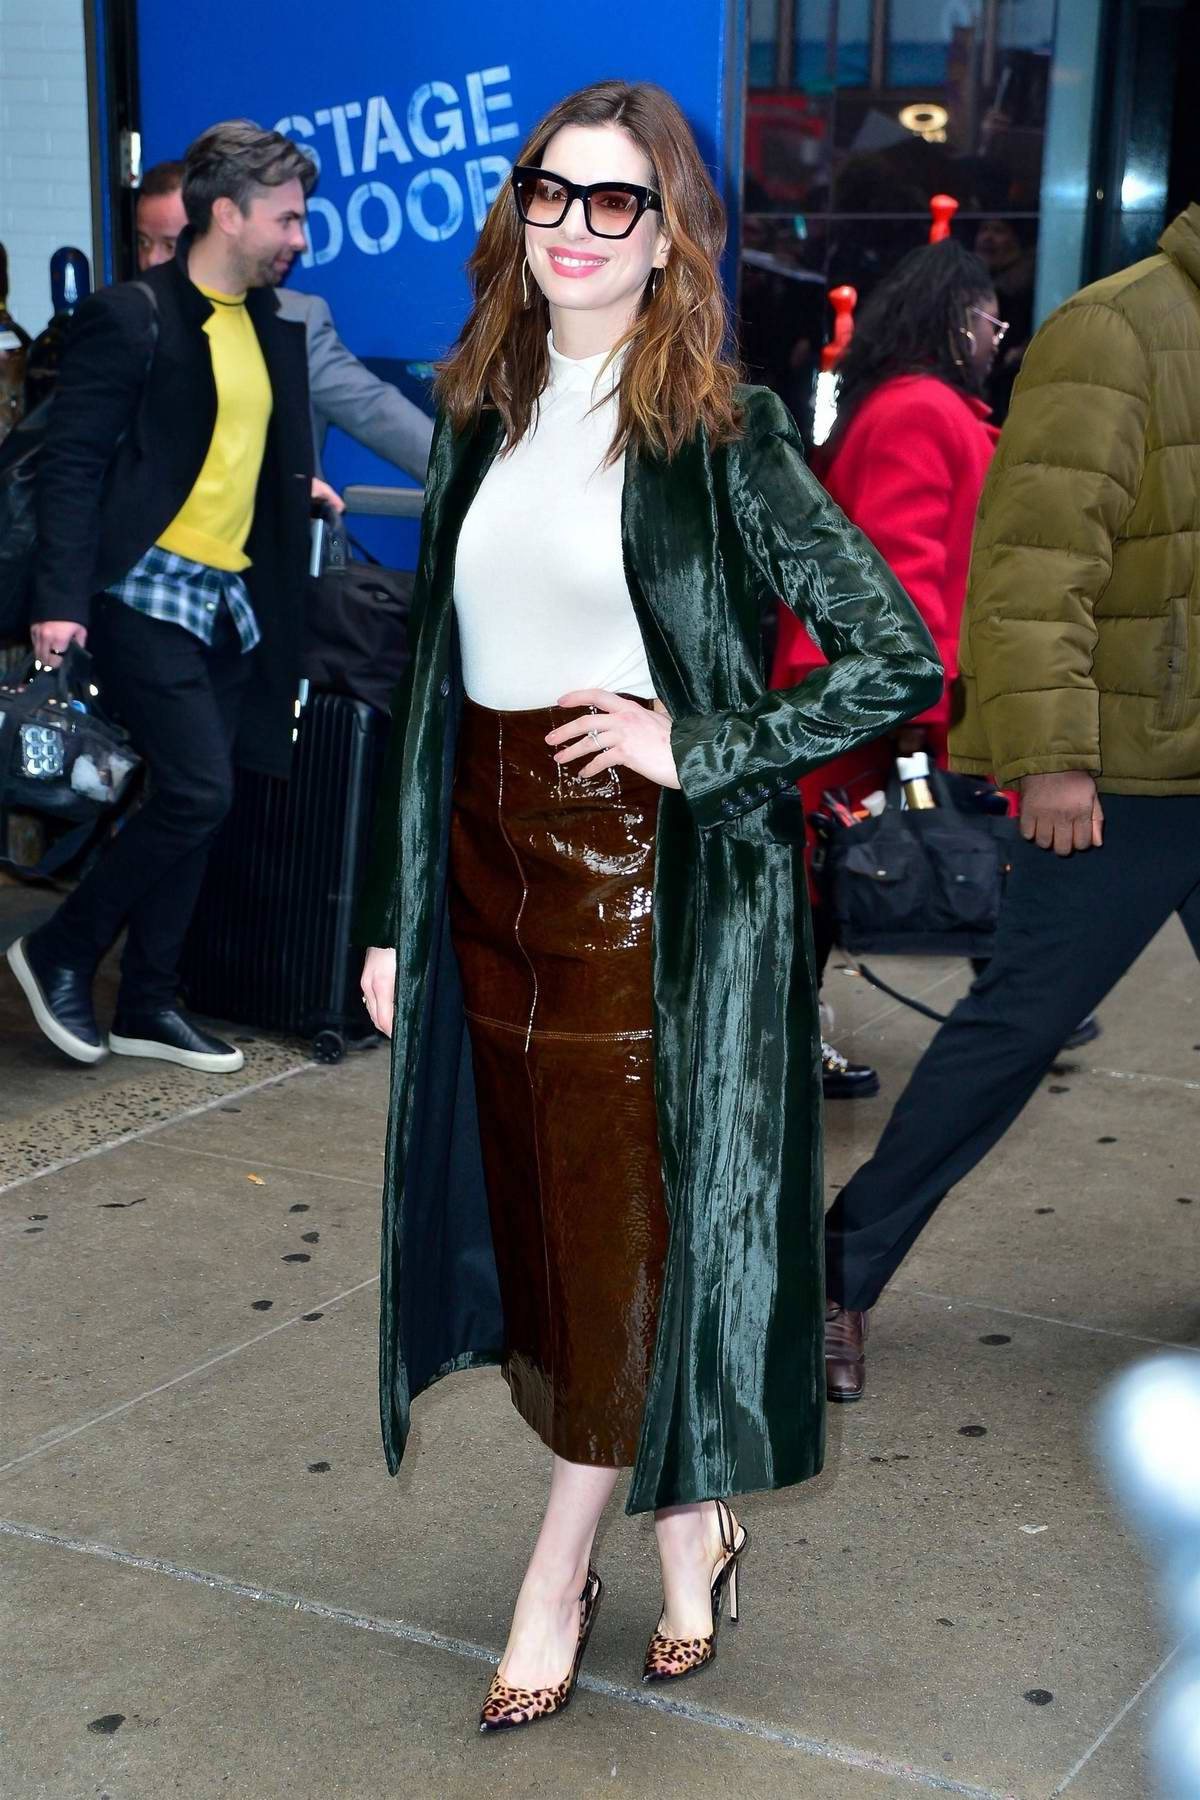 Anne Hathaway is all smiles as she leaves after her appearance on 'Good Morning America' in New York City